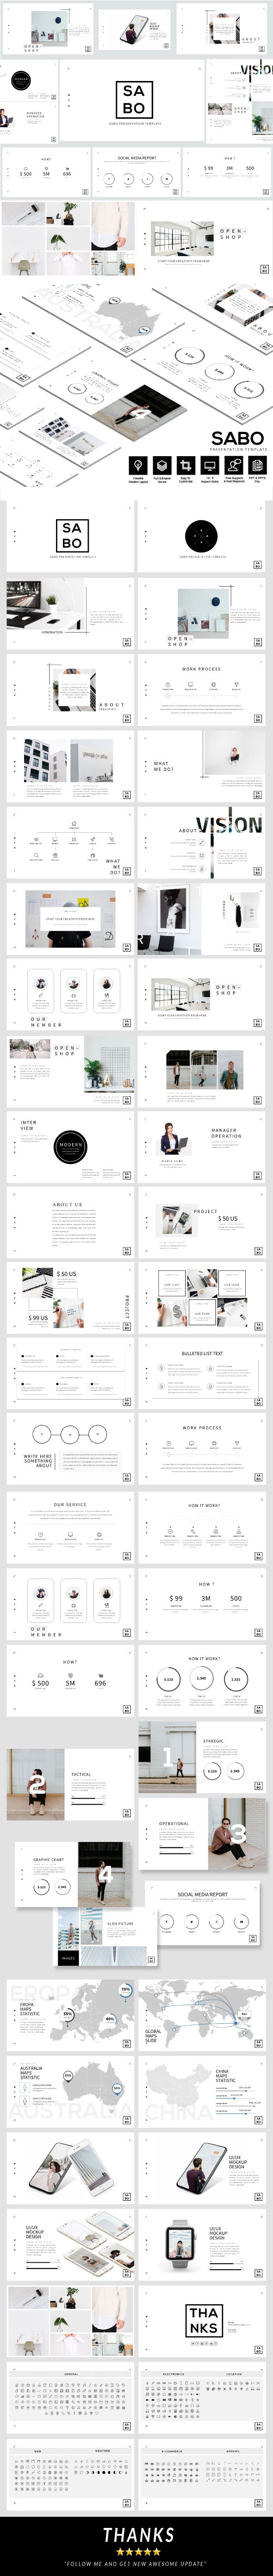 Sabo - Business Presentation Template - Business PowerPoint Templates